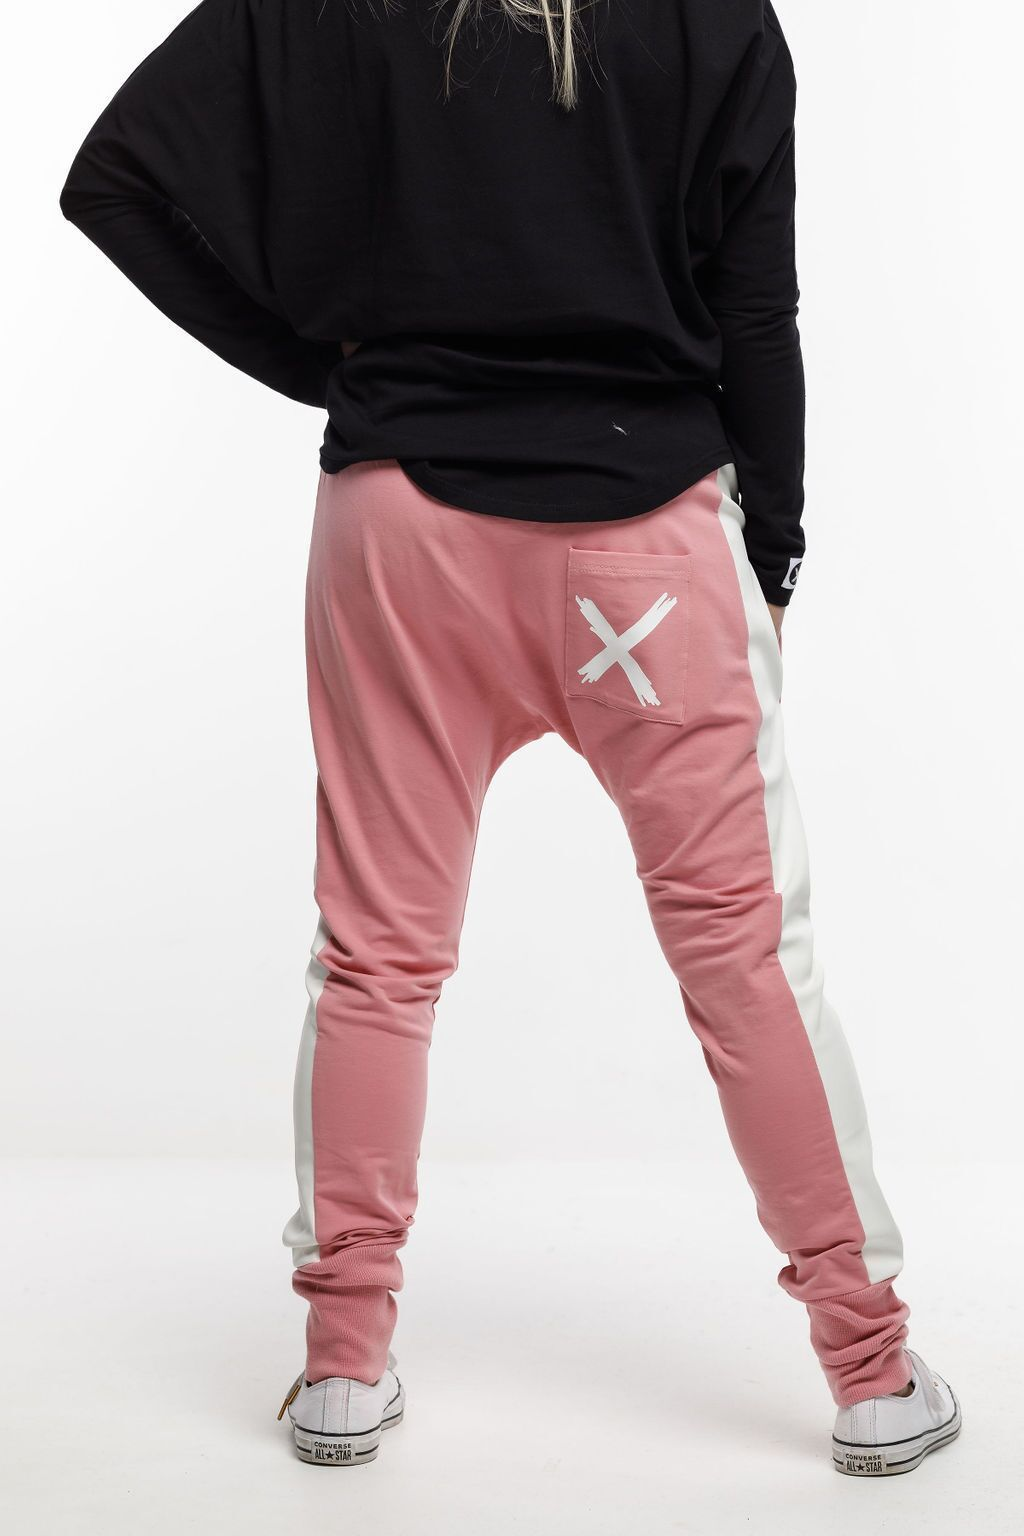 Home-Lee: Relaxer Pants - Rose Pink With X - 12 image